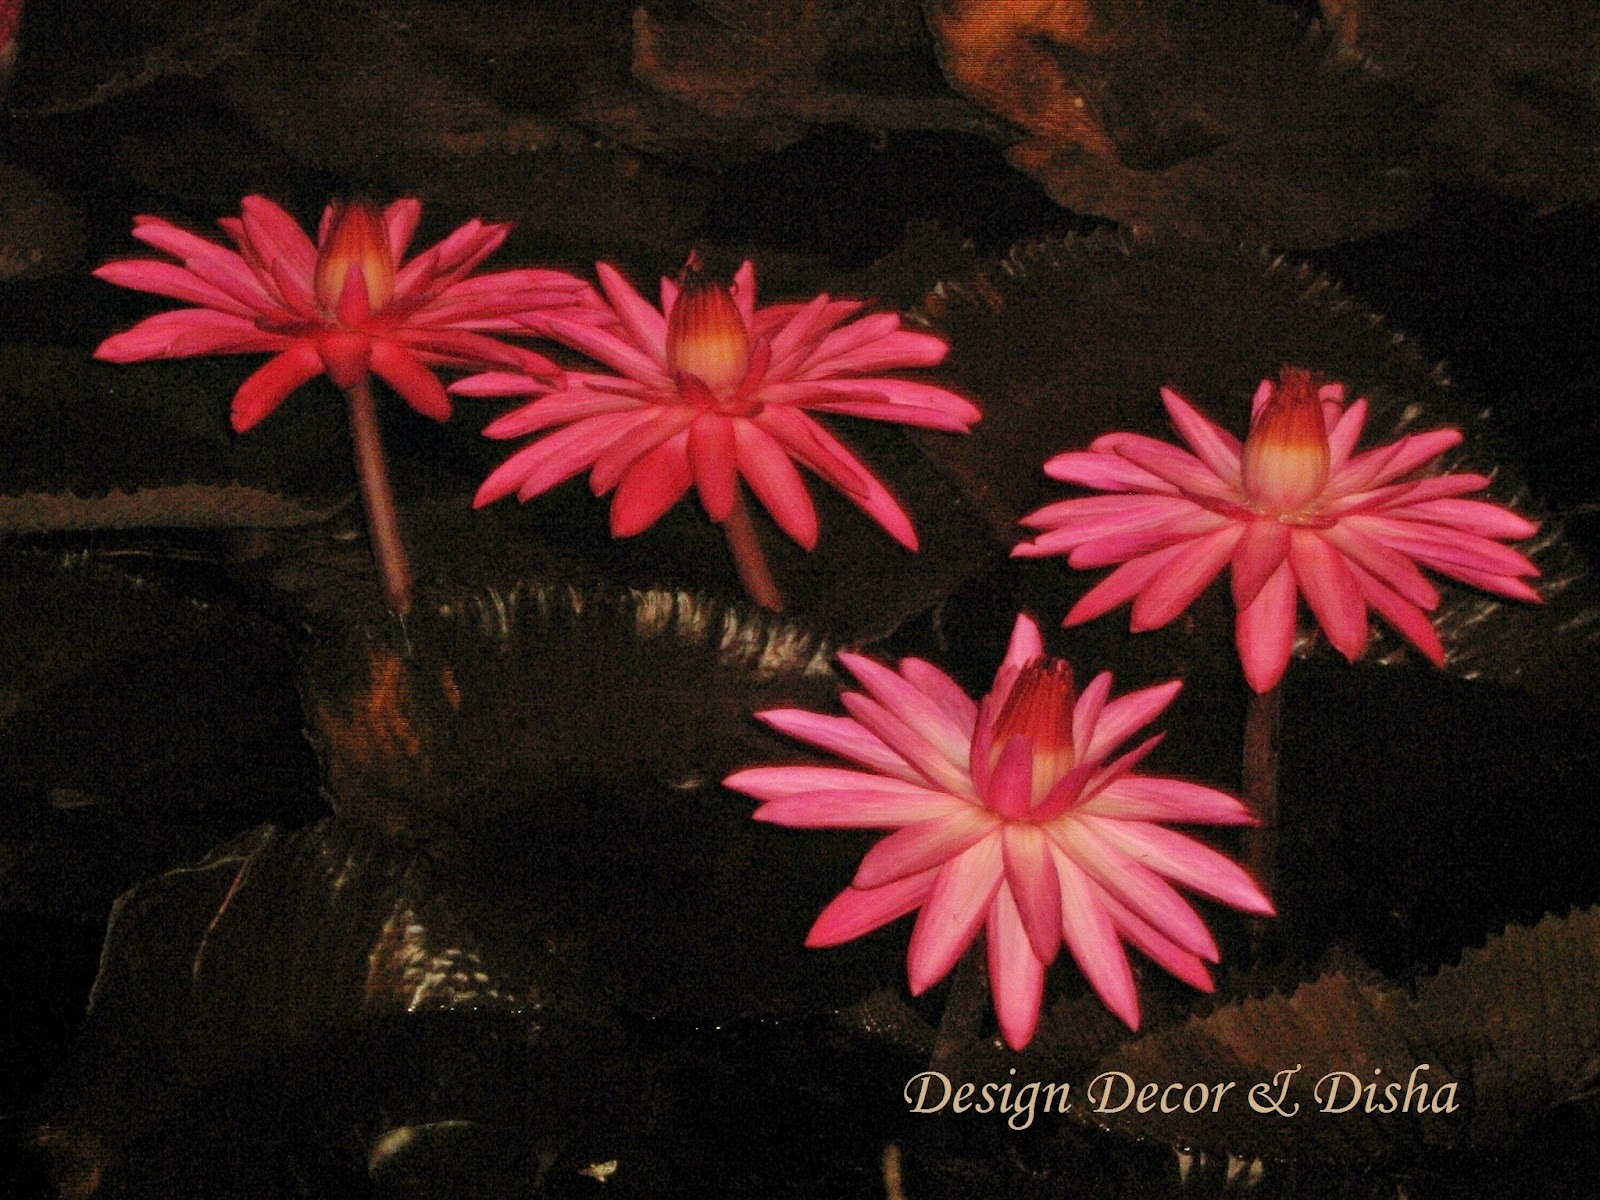 Design decor disha an indian design decor blog lotus the i found that place very special it was full of lotus flowers and buds many other fun things too izmirmasajfo